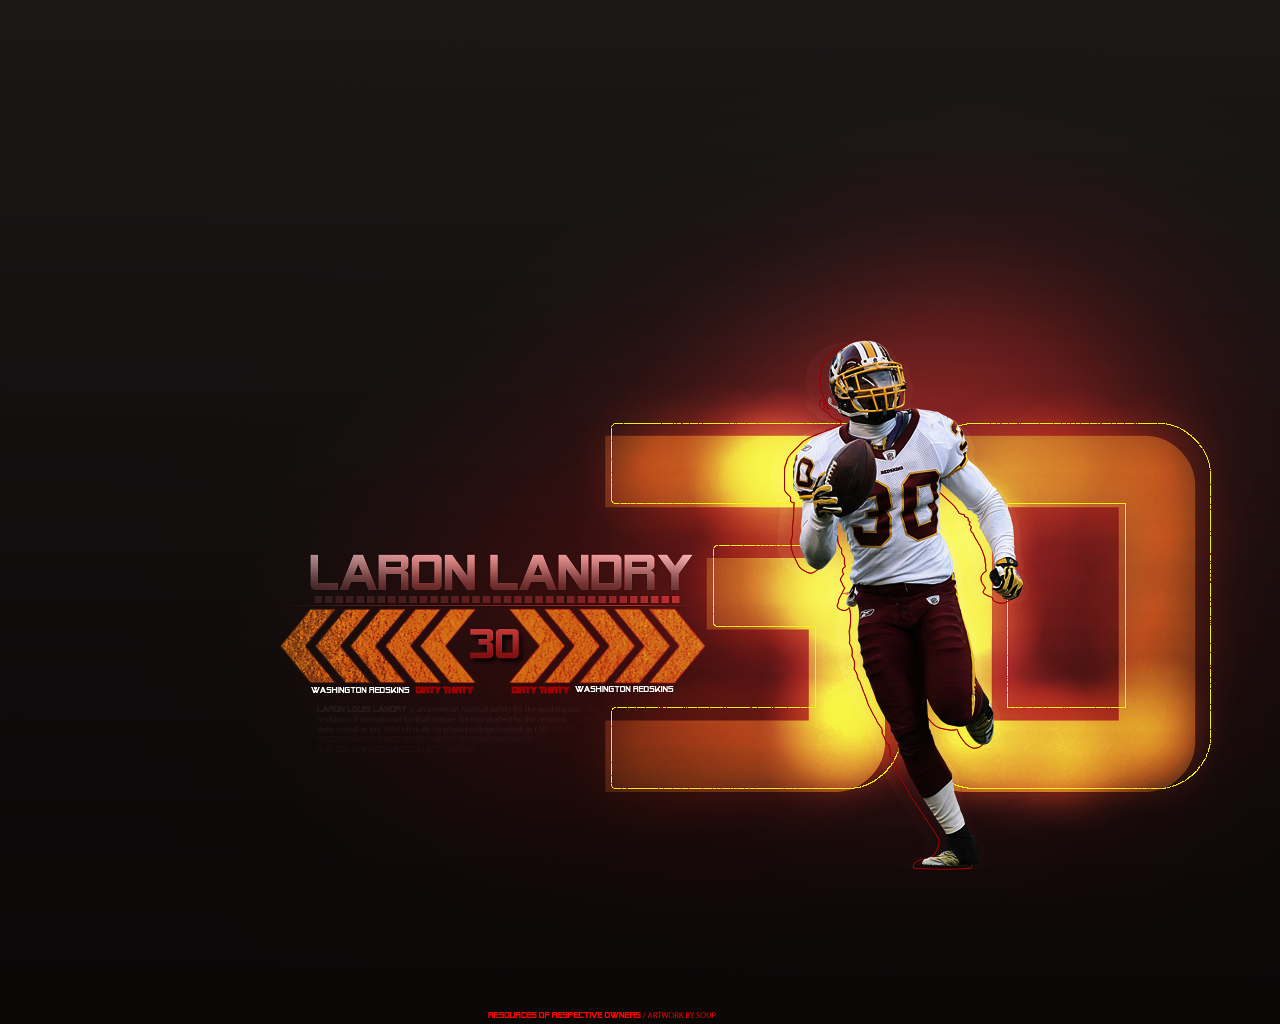 Washington Redskins wallpaper desktop wallpaper Washington Redskins 1280x1024